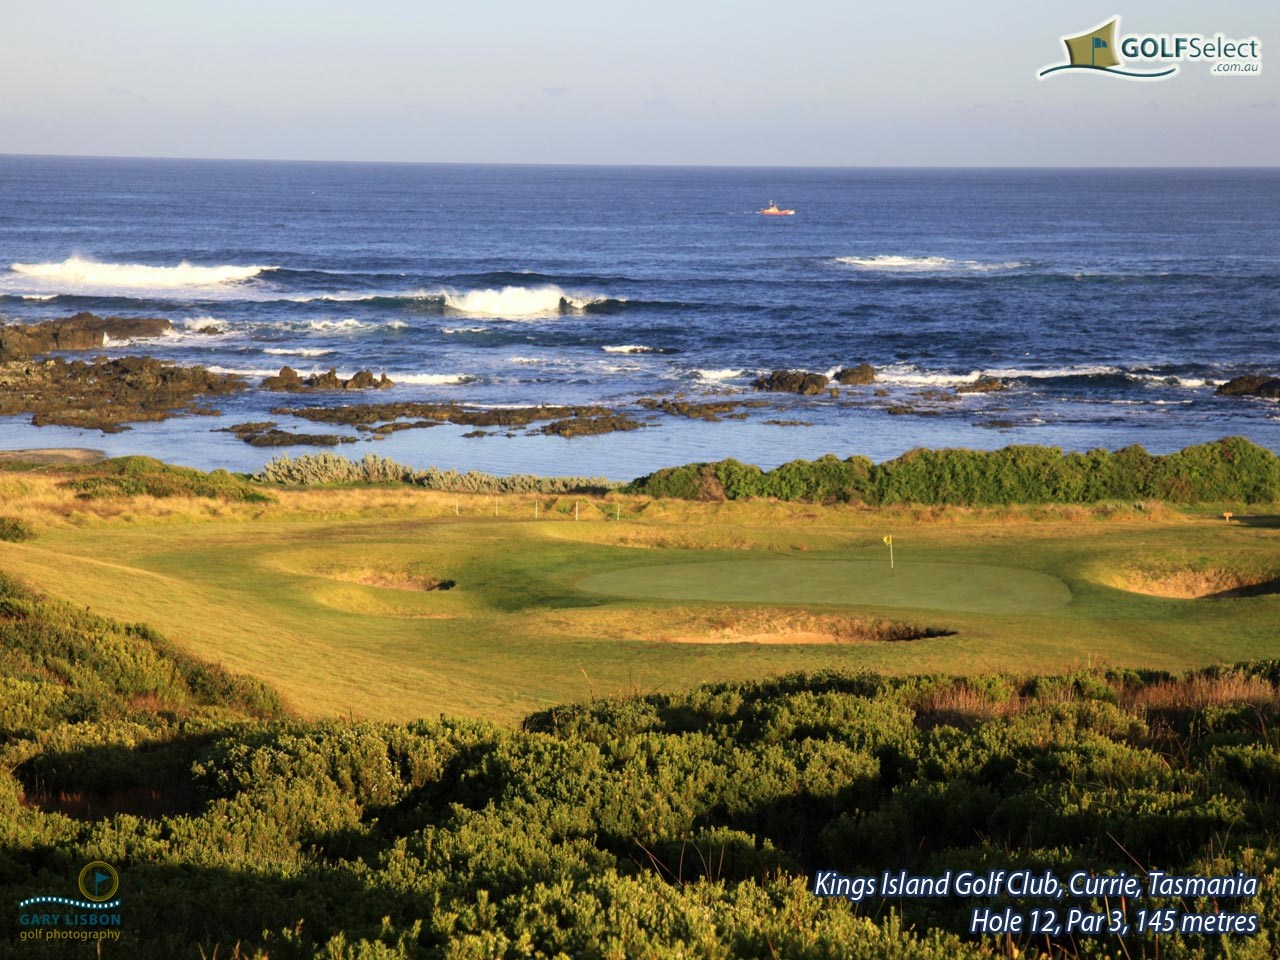 King Island Golf Club Hole 12, Par 3, 145 metres